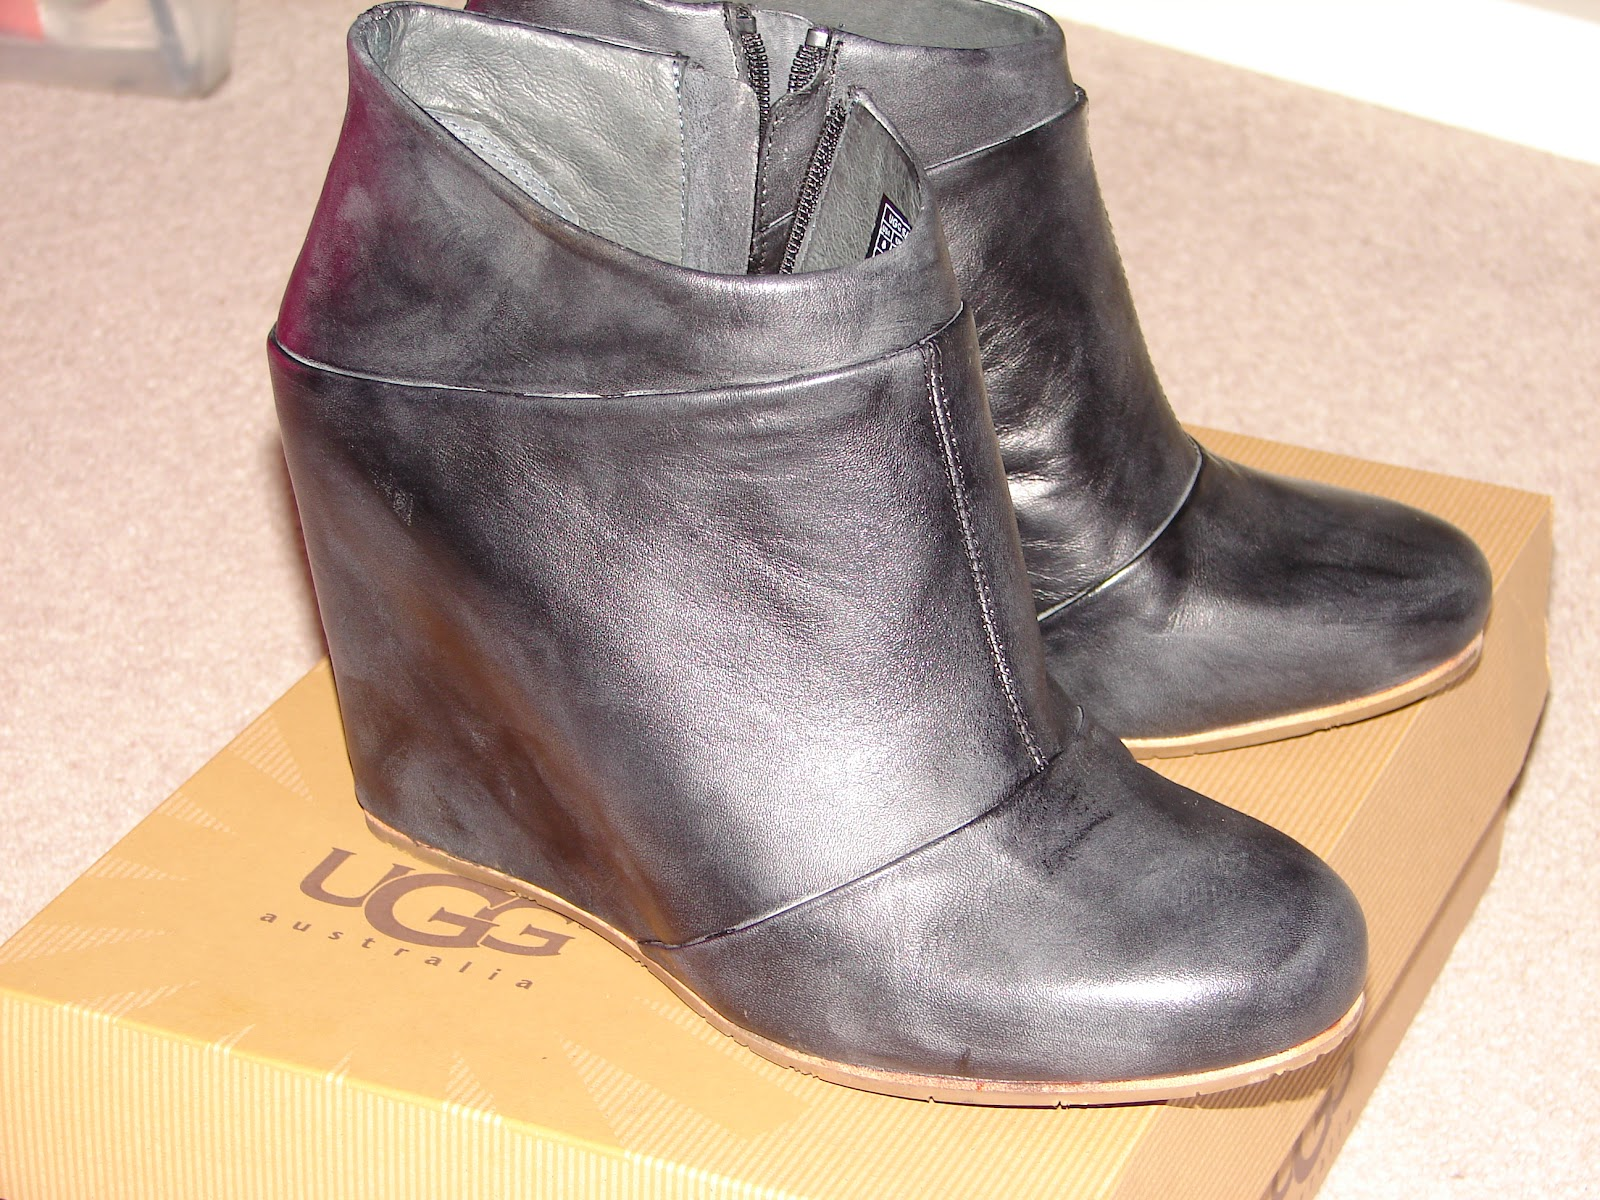 e014d224ece Styles Styles American 2012 Association Go Uggs xPwAXYqnv